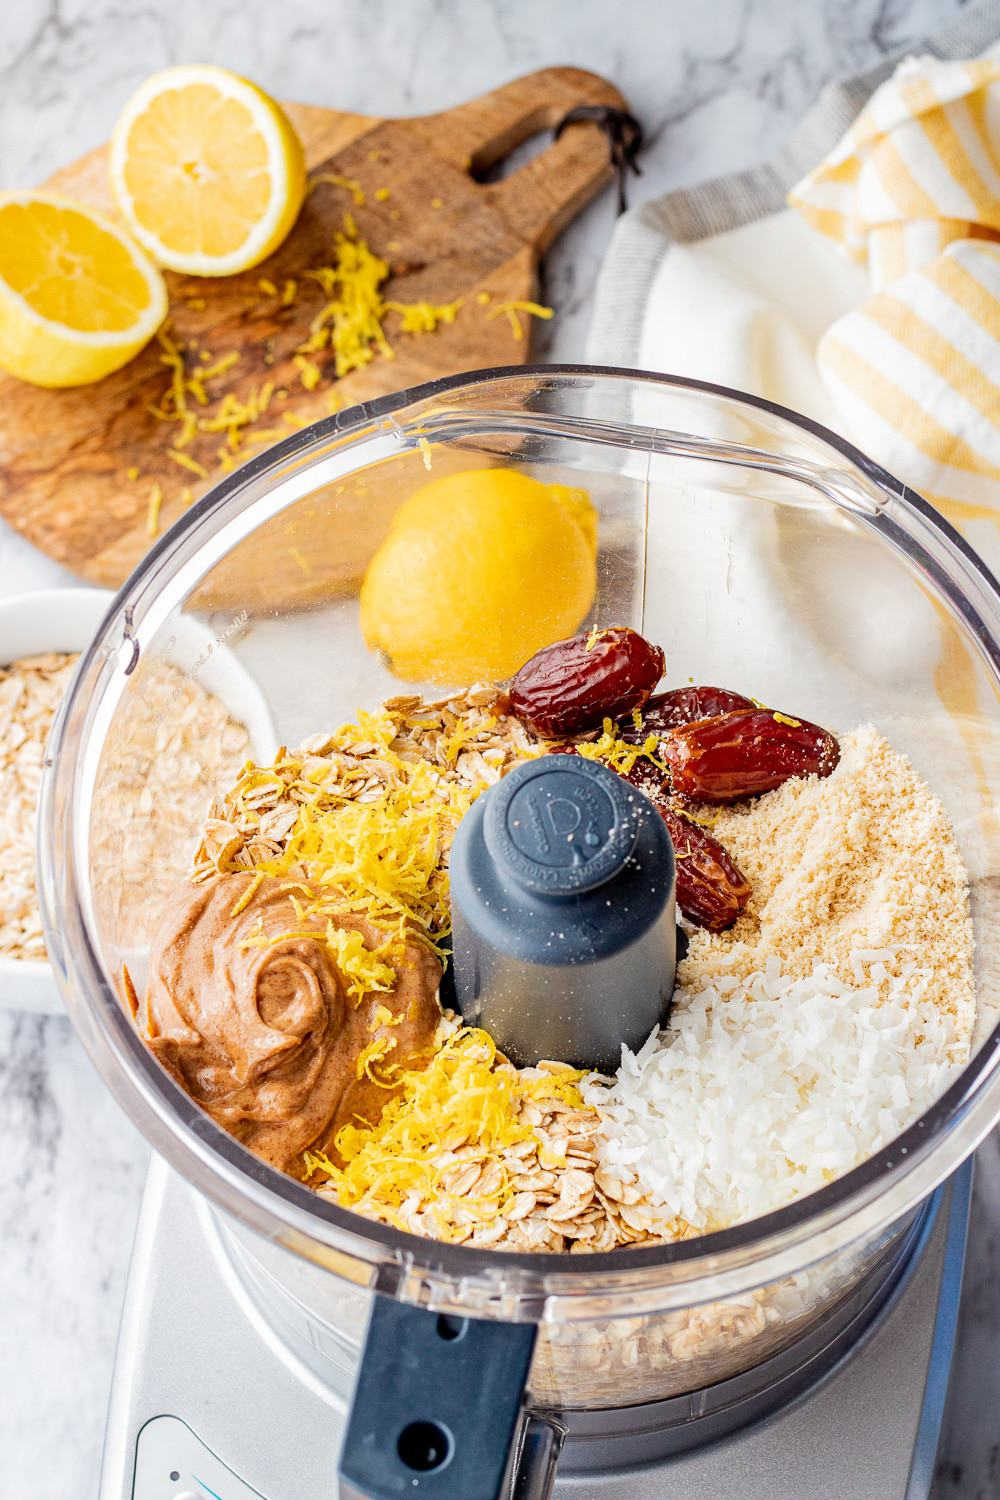 clear plastic bowl with dates, almond butter, almond flour, coconut flakes, oats, lemon zest and juice, and vanilla extract.